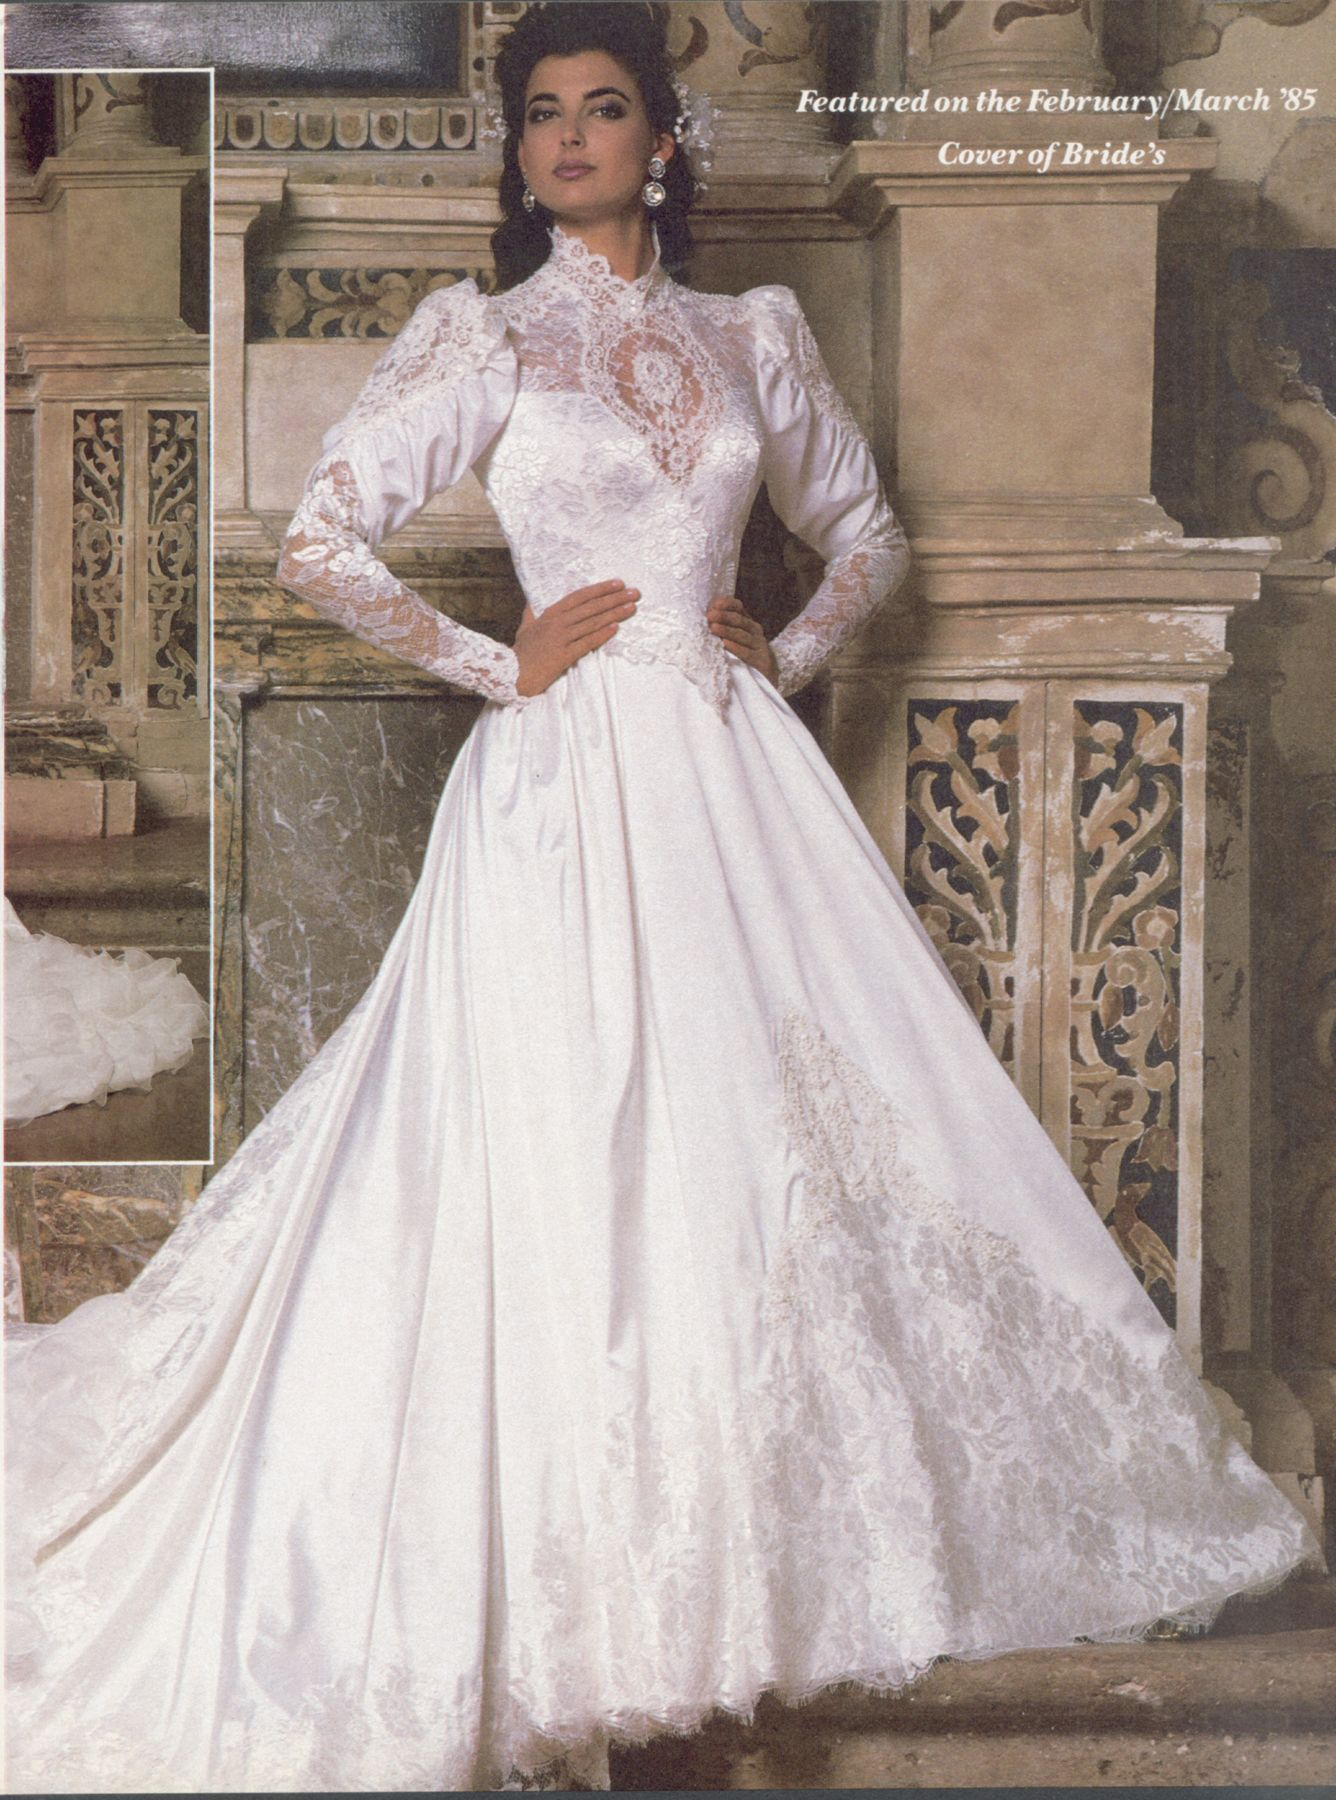 Feb Mar 1986 Brides Magazine 1980s Wedding Dress Dream Dresses Gowns